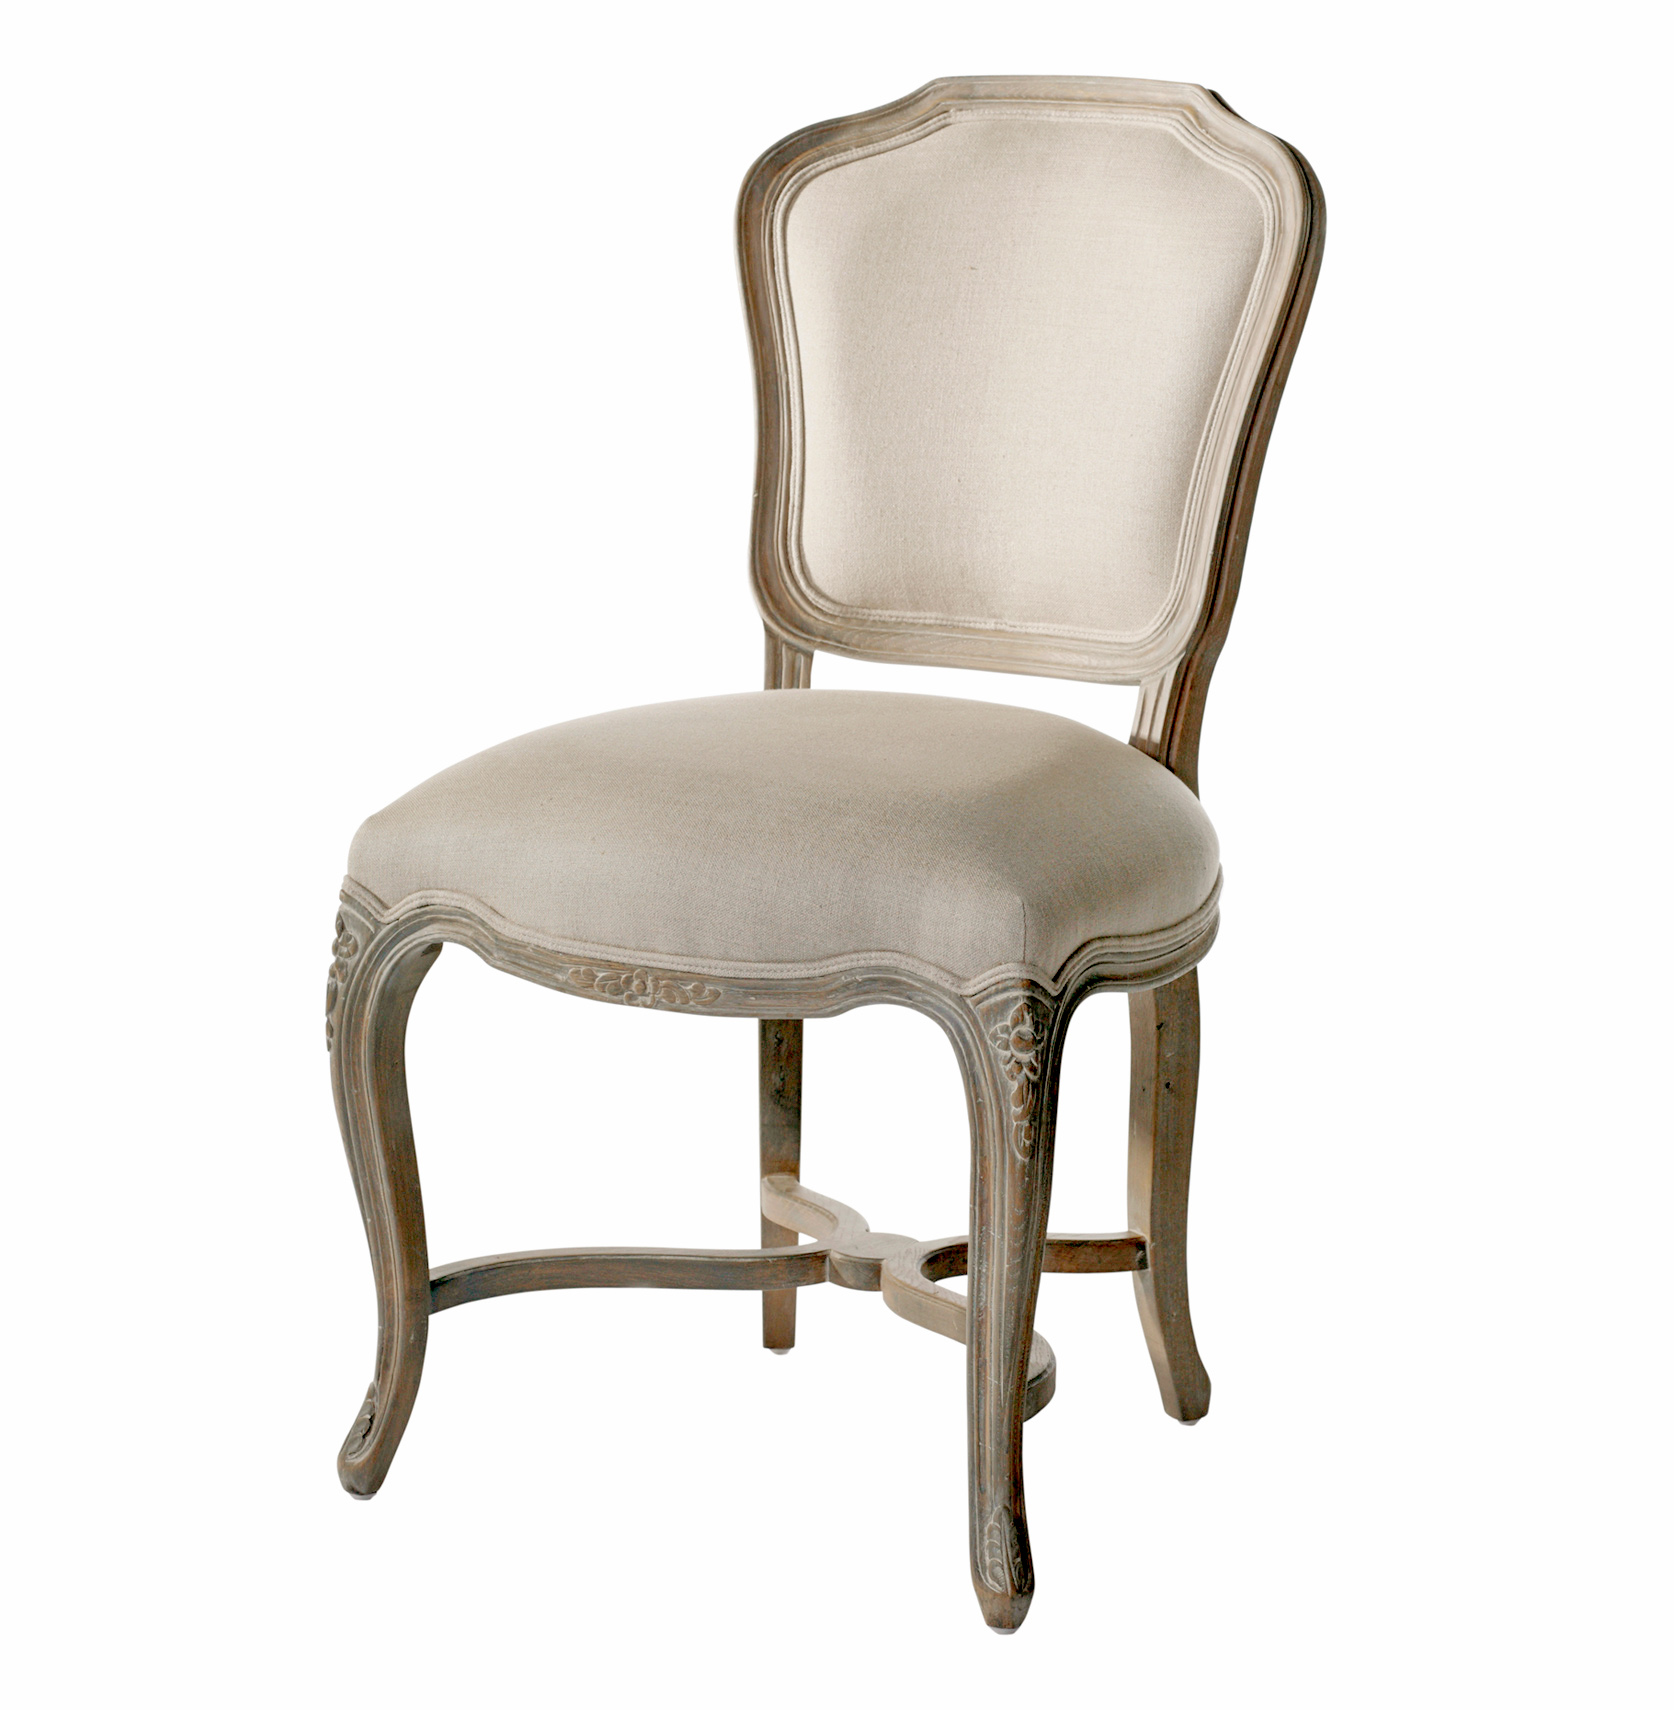 Simone French Provincial Carved Oak Linen Dining Chair